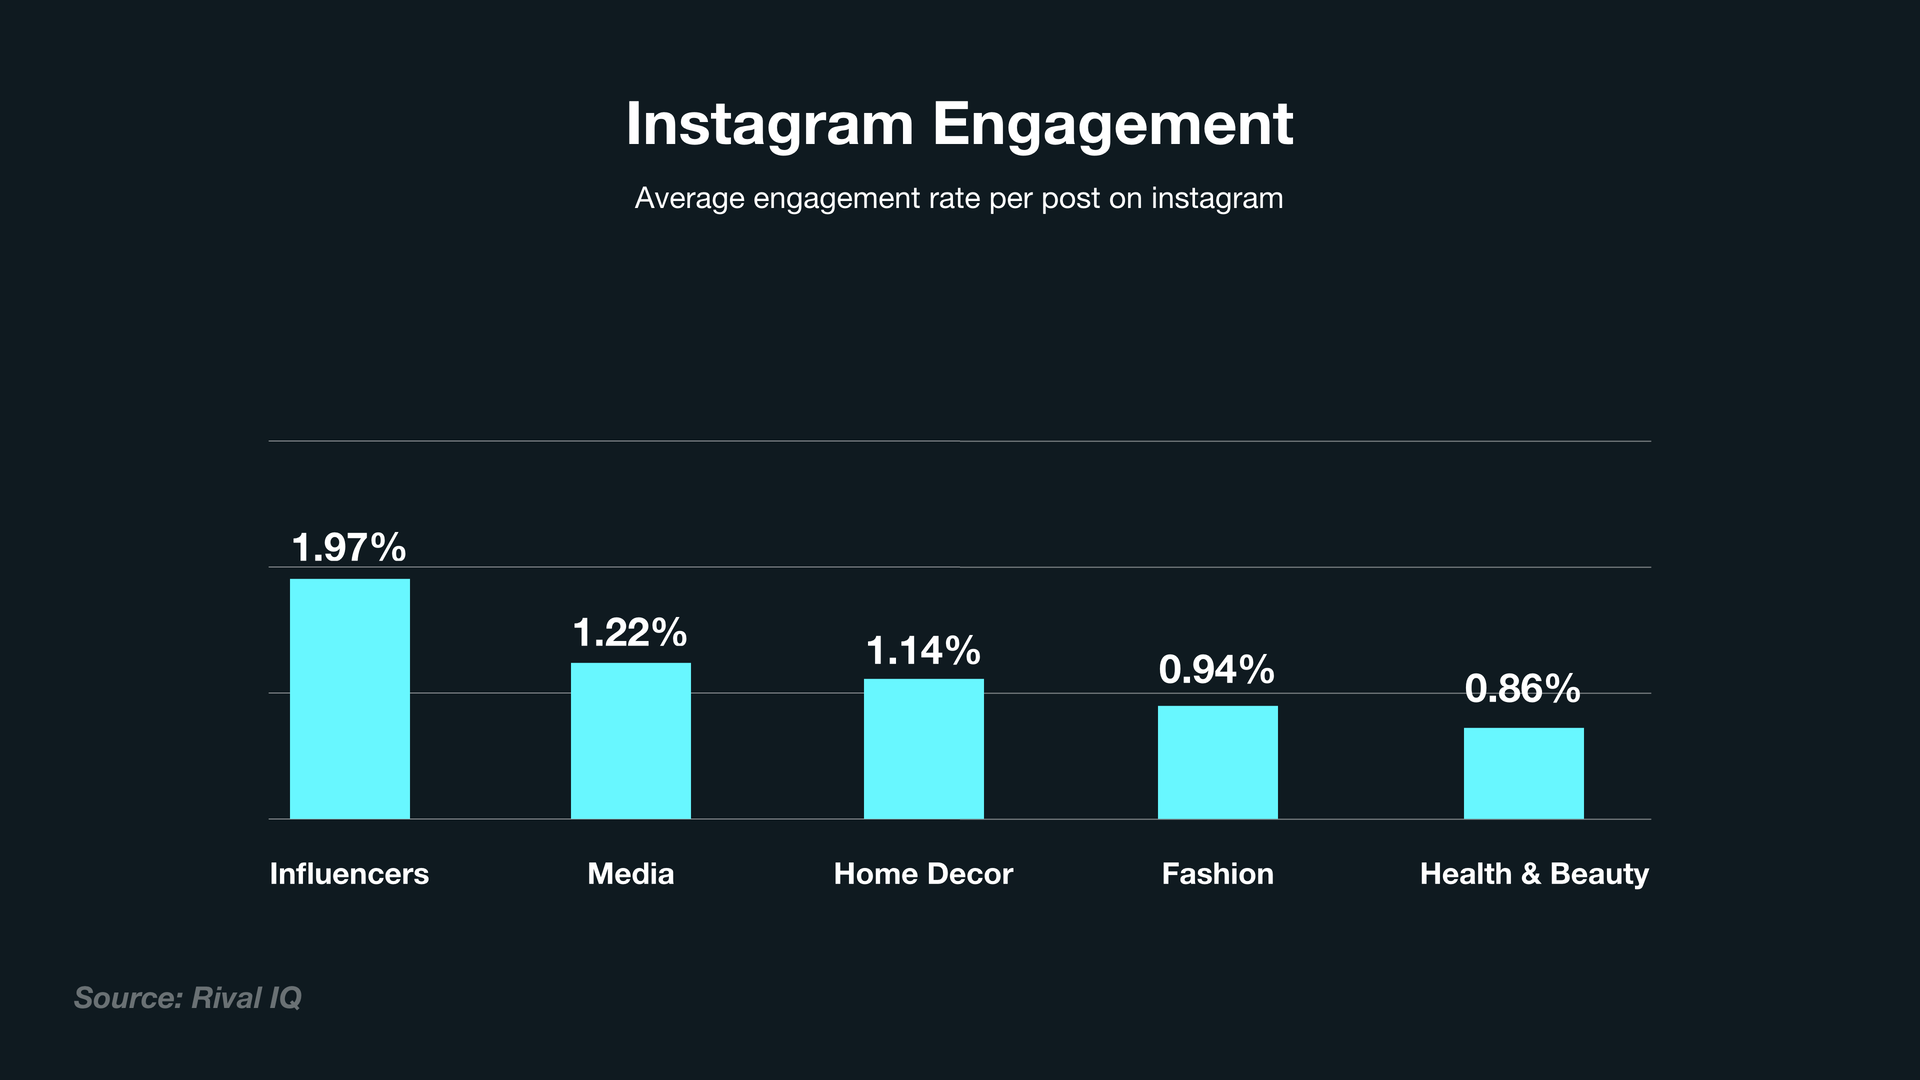 A horizontal bar chart shows average Instagram engagement rates for different industies